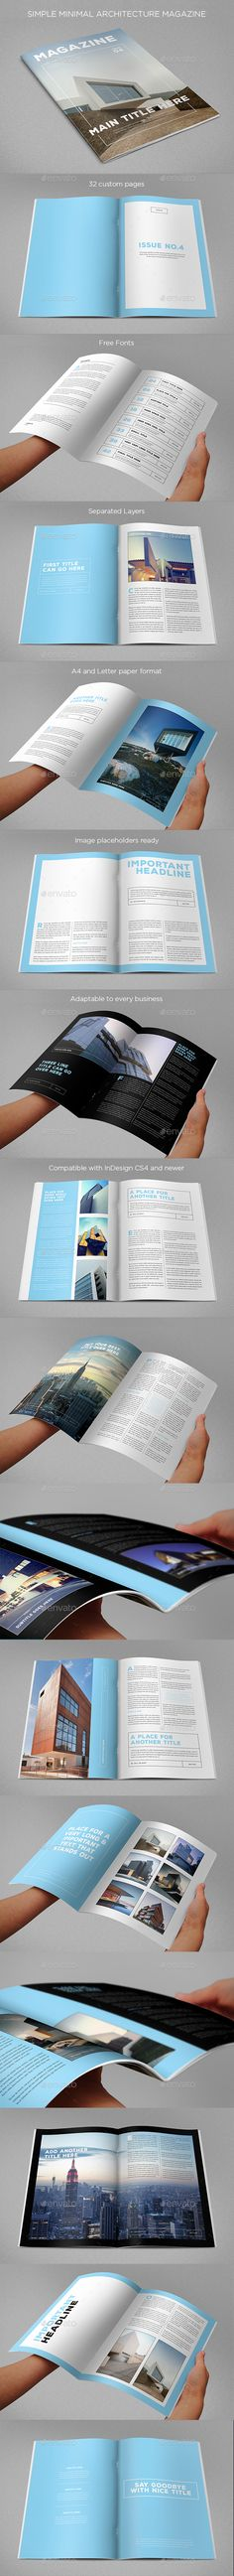 Simple Minimal Architecture Magazine Template InDesign INDD #design Download: http://graphicriver.net/item/simple-minimal-architecture-magazine/14459946?ref=ksioks